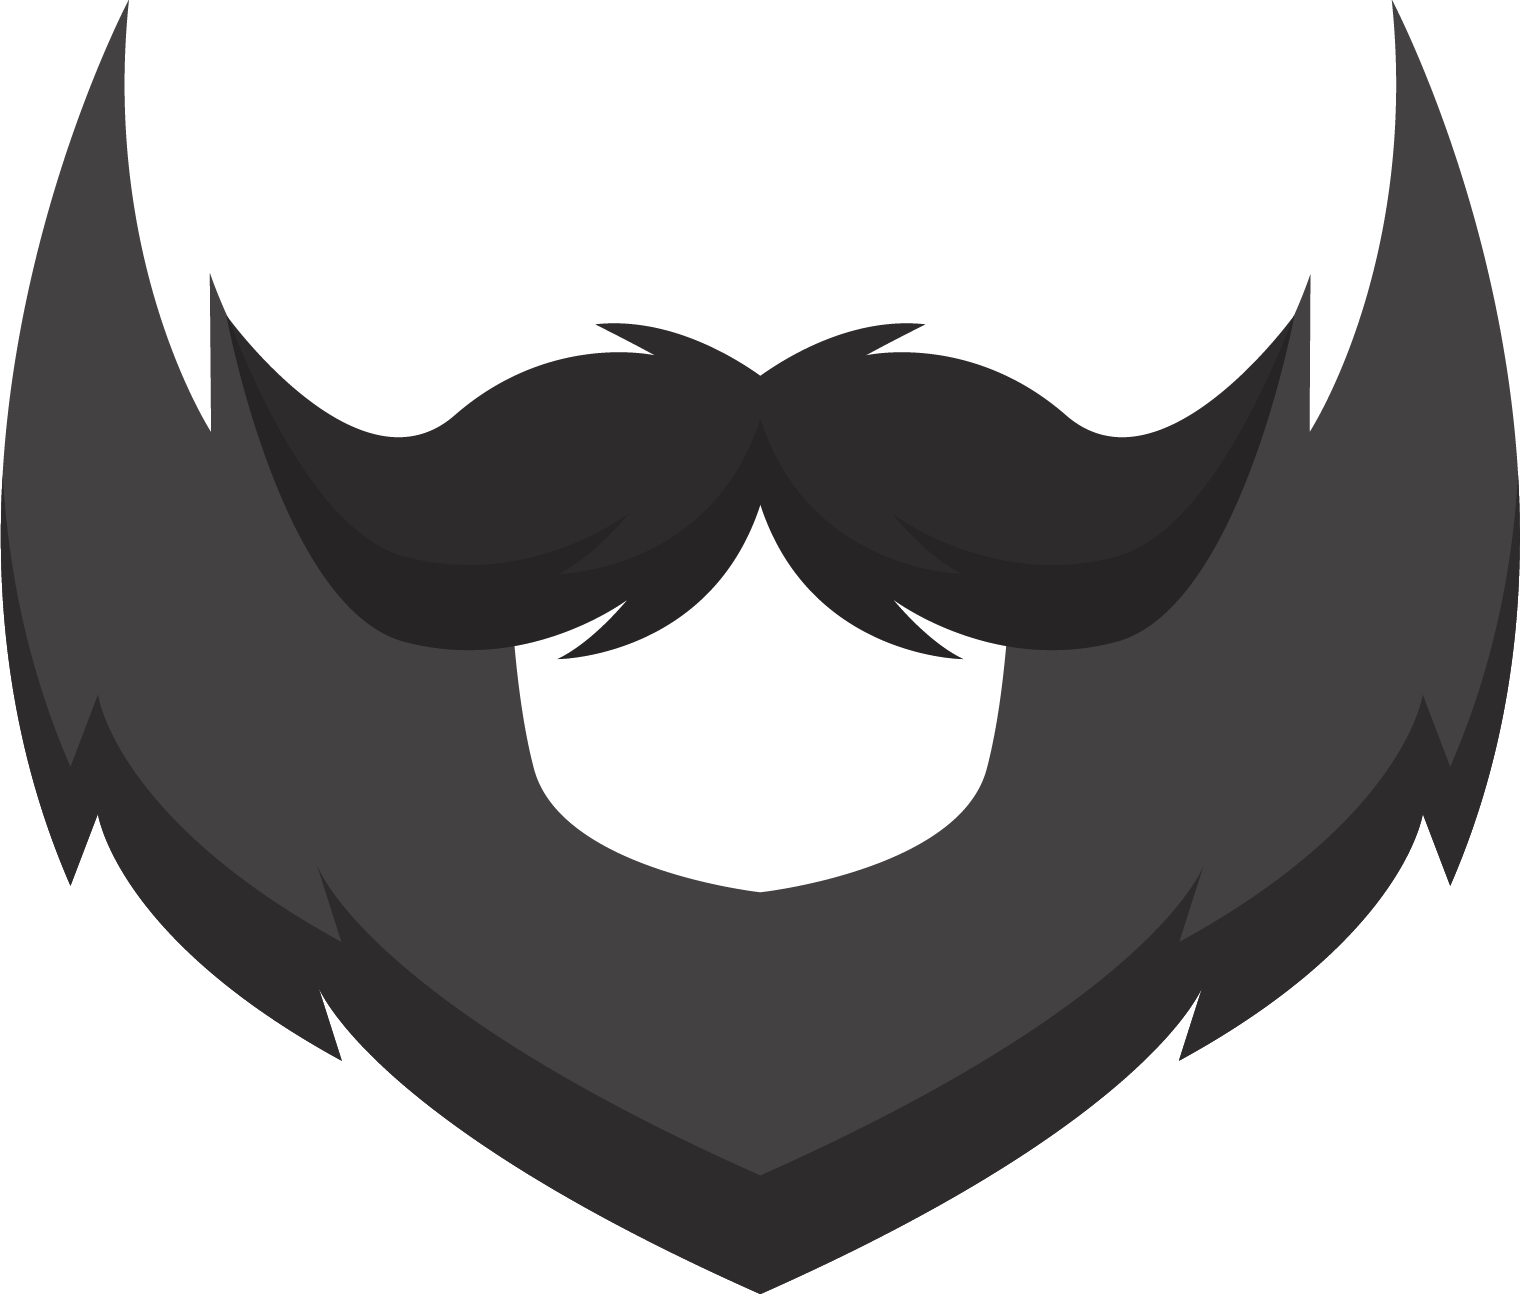 clipart royalty free download Beard clipart editing. Silhouette clip art at